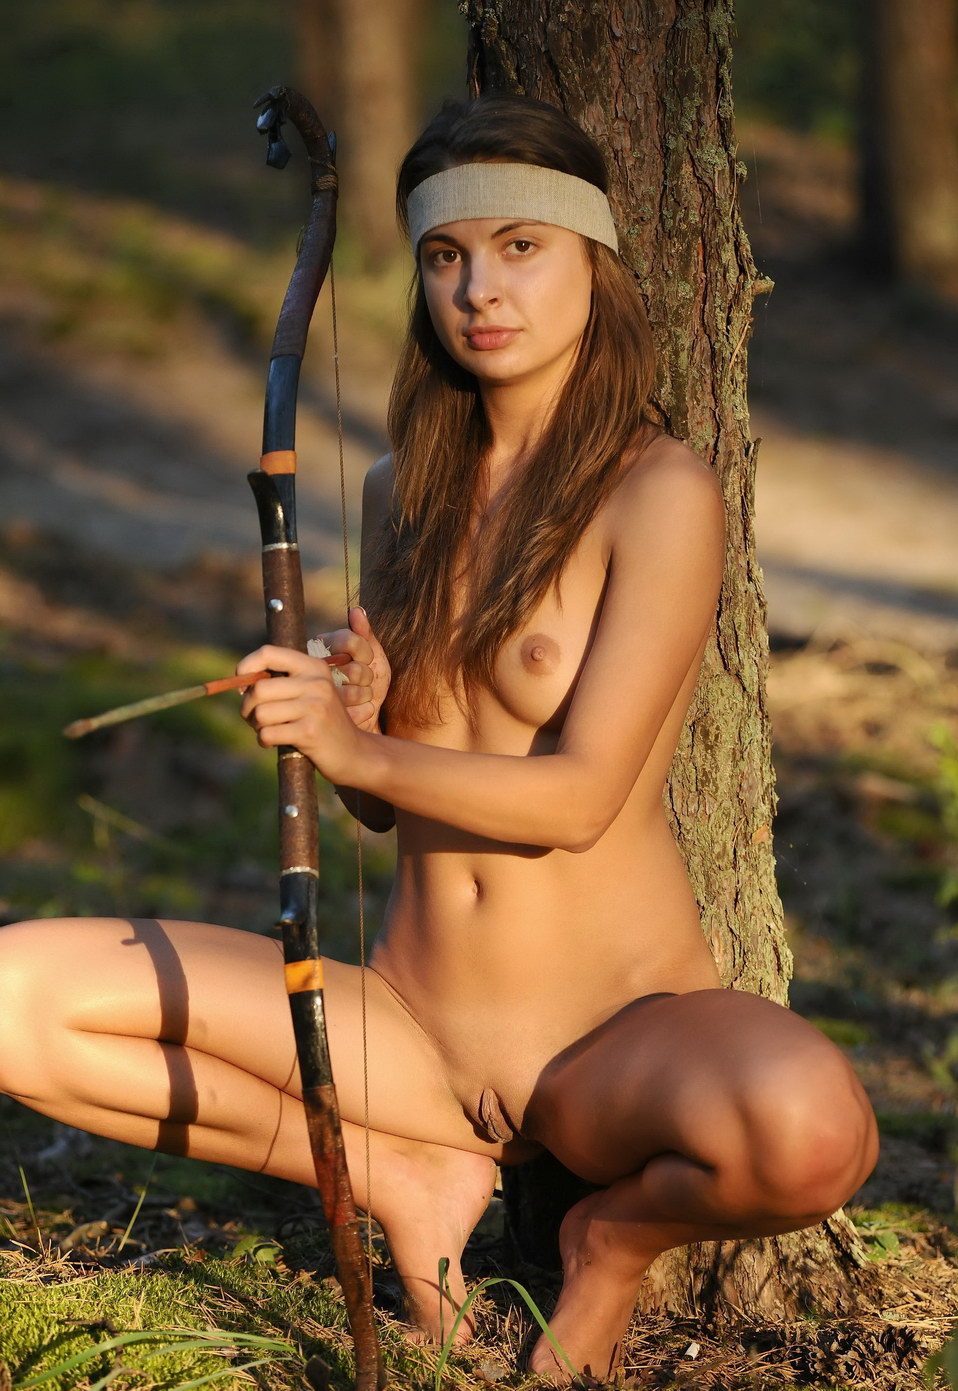 archers Nude women